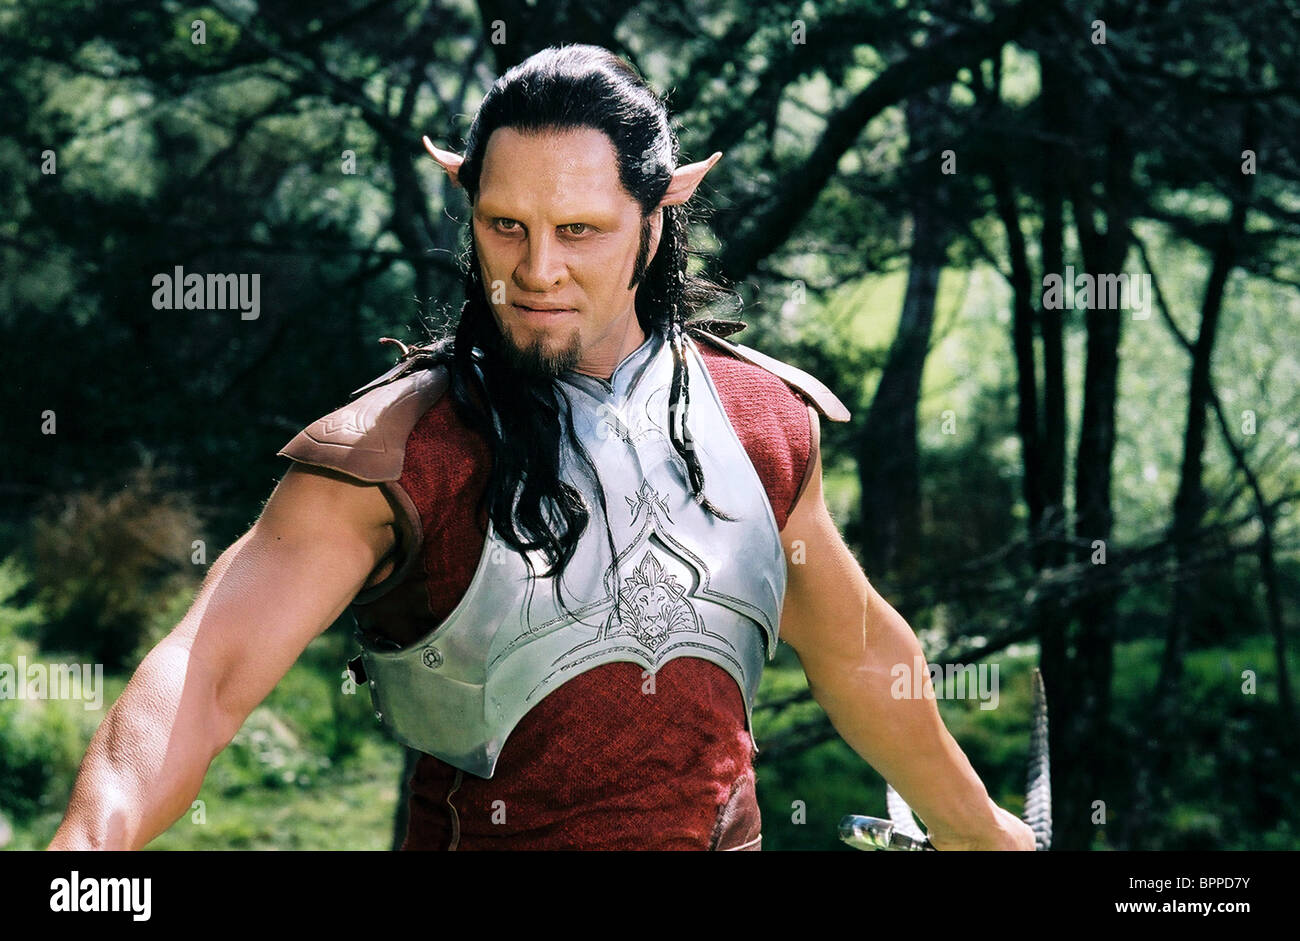 PATRICK KAKE THE CHRONICLES OF NARNIA: THE LION THE WITCH AND THE WARDROBE (2005) - Stock Image